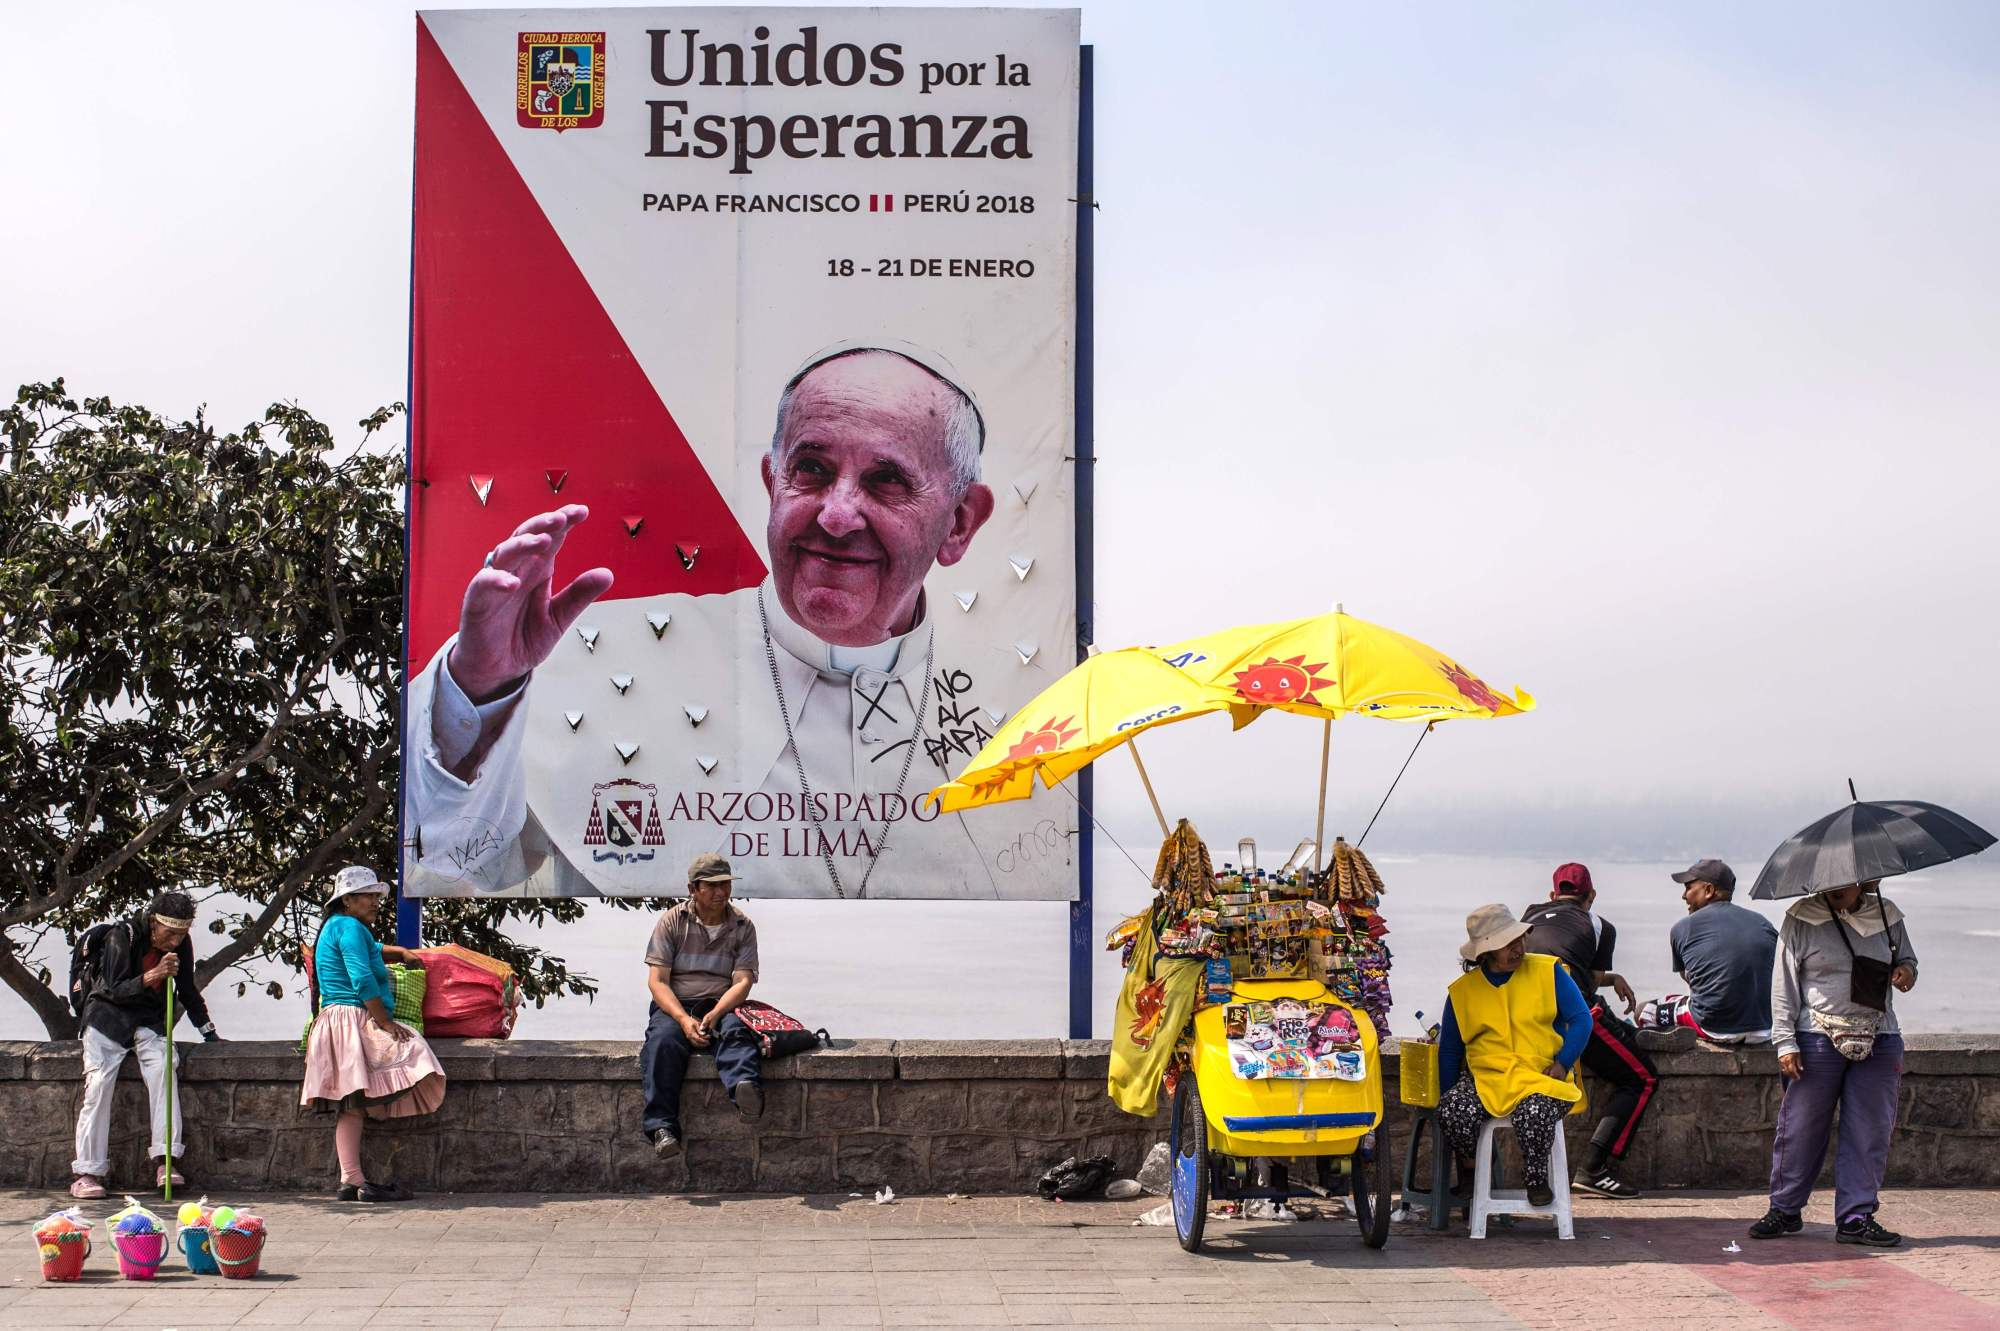 Banners welcoming Pope Francis to Peru are seen in Lima on Saturday. Pope Francis will visit the cities of Puerto Maldonado, Trujillo and Lima between Jan. 18 and Jan. 21.   AFP-JIJI